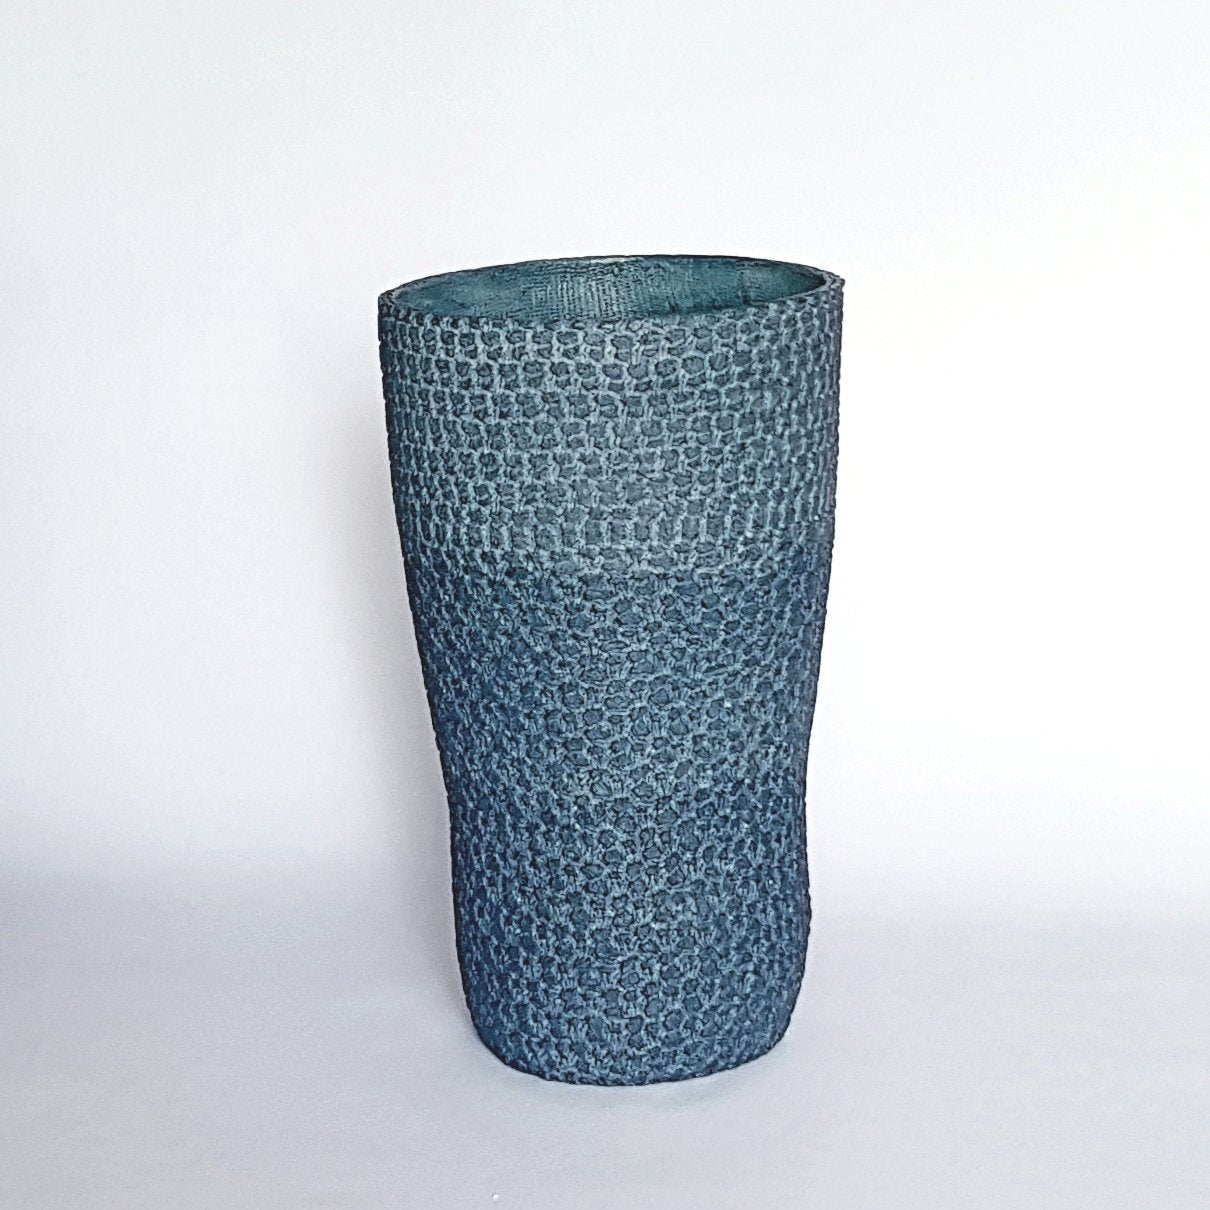 LARGE ASYMMETRICAL VASE by Enlightenme Home Decor at SARZA. asymmetrical, decor, enlightenme, homeware, large, recycled paper, V13b, vase, VASES